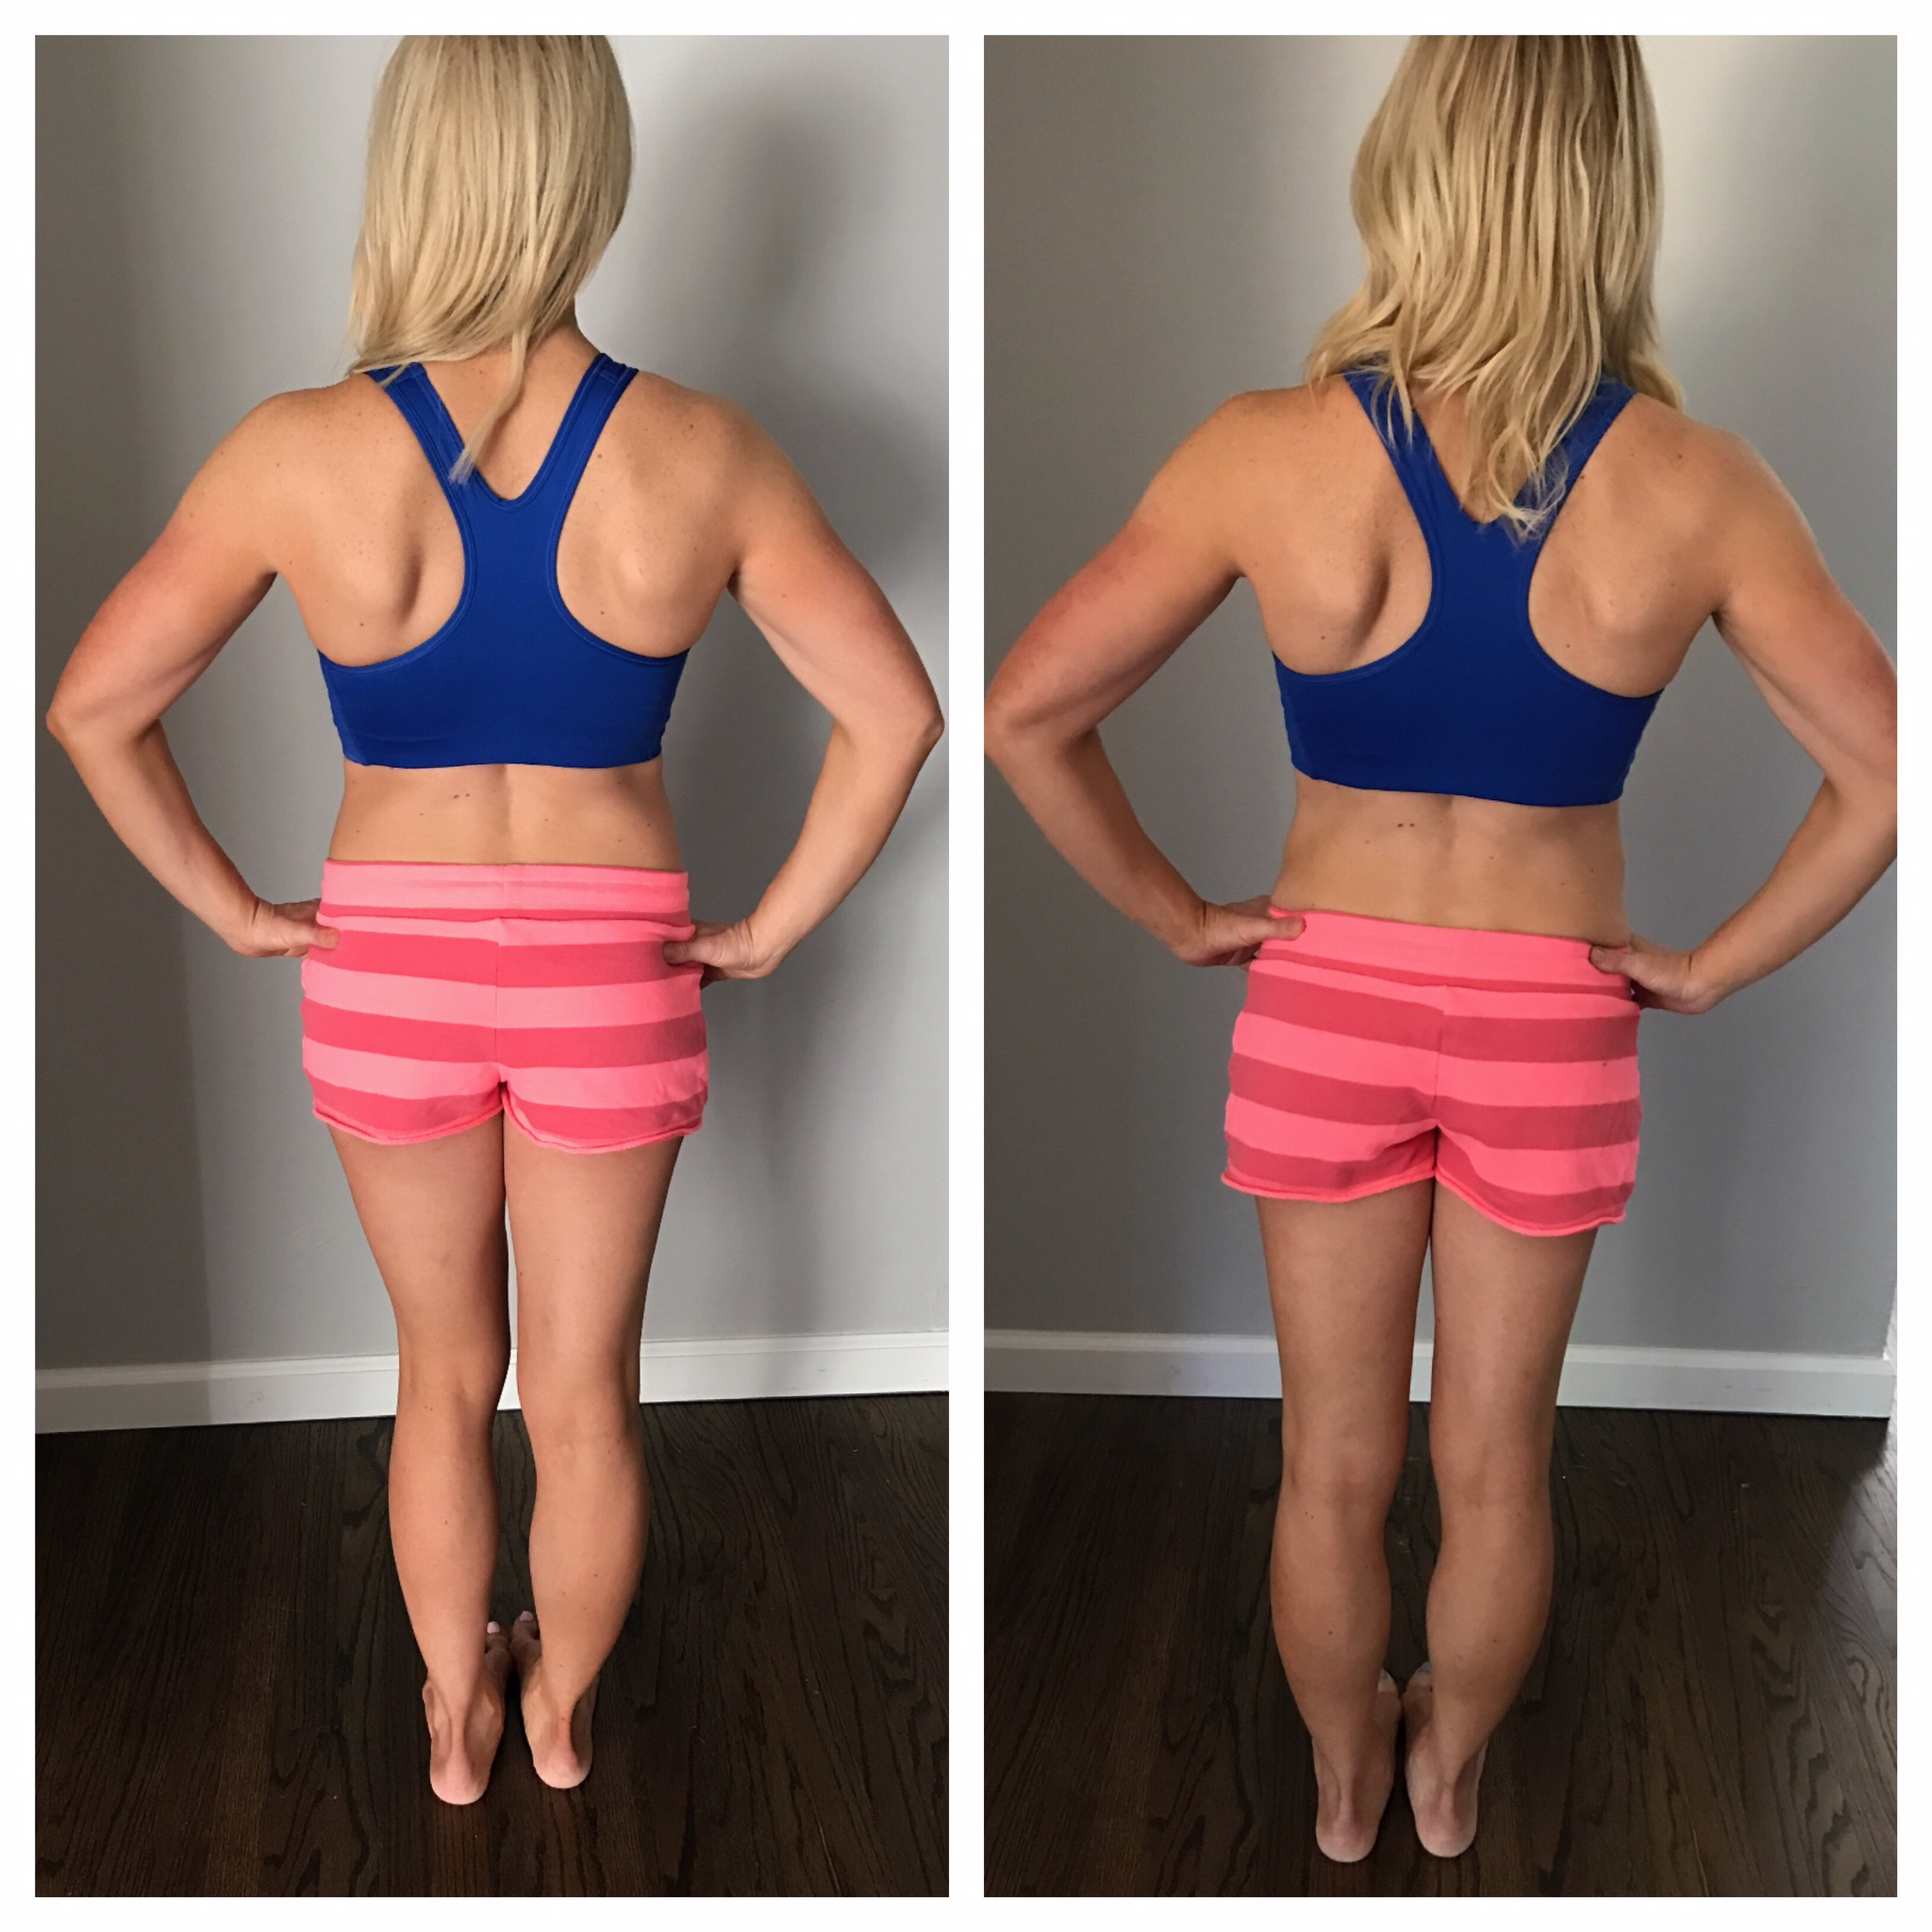 Love HIIT Body Guide Fitness Program - BEFORE/AFTER HIIT Results by San Francisco lifestyle blogger For The Love